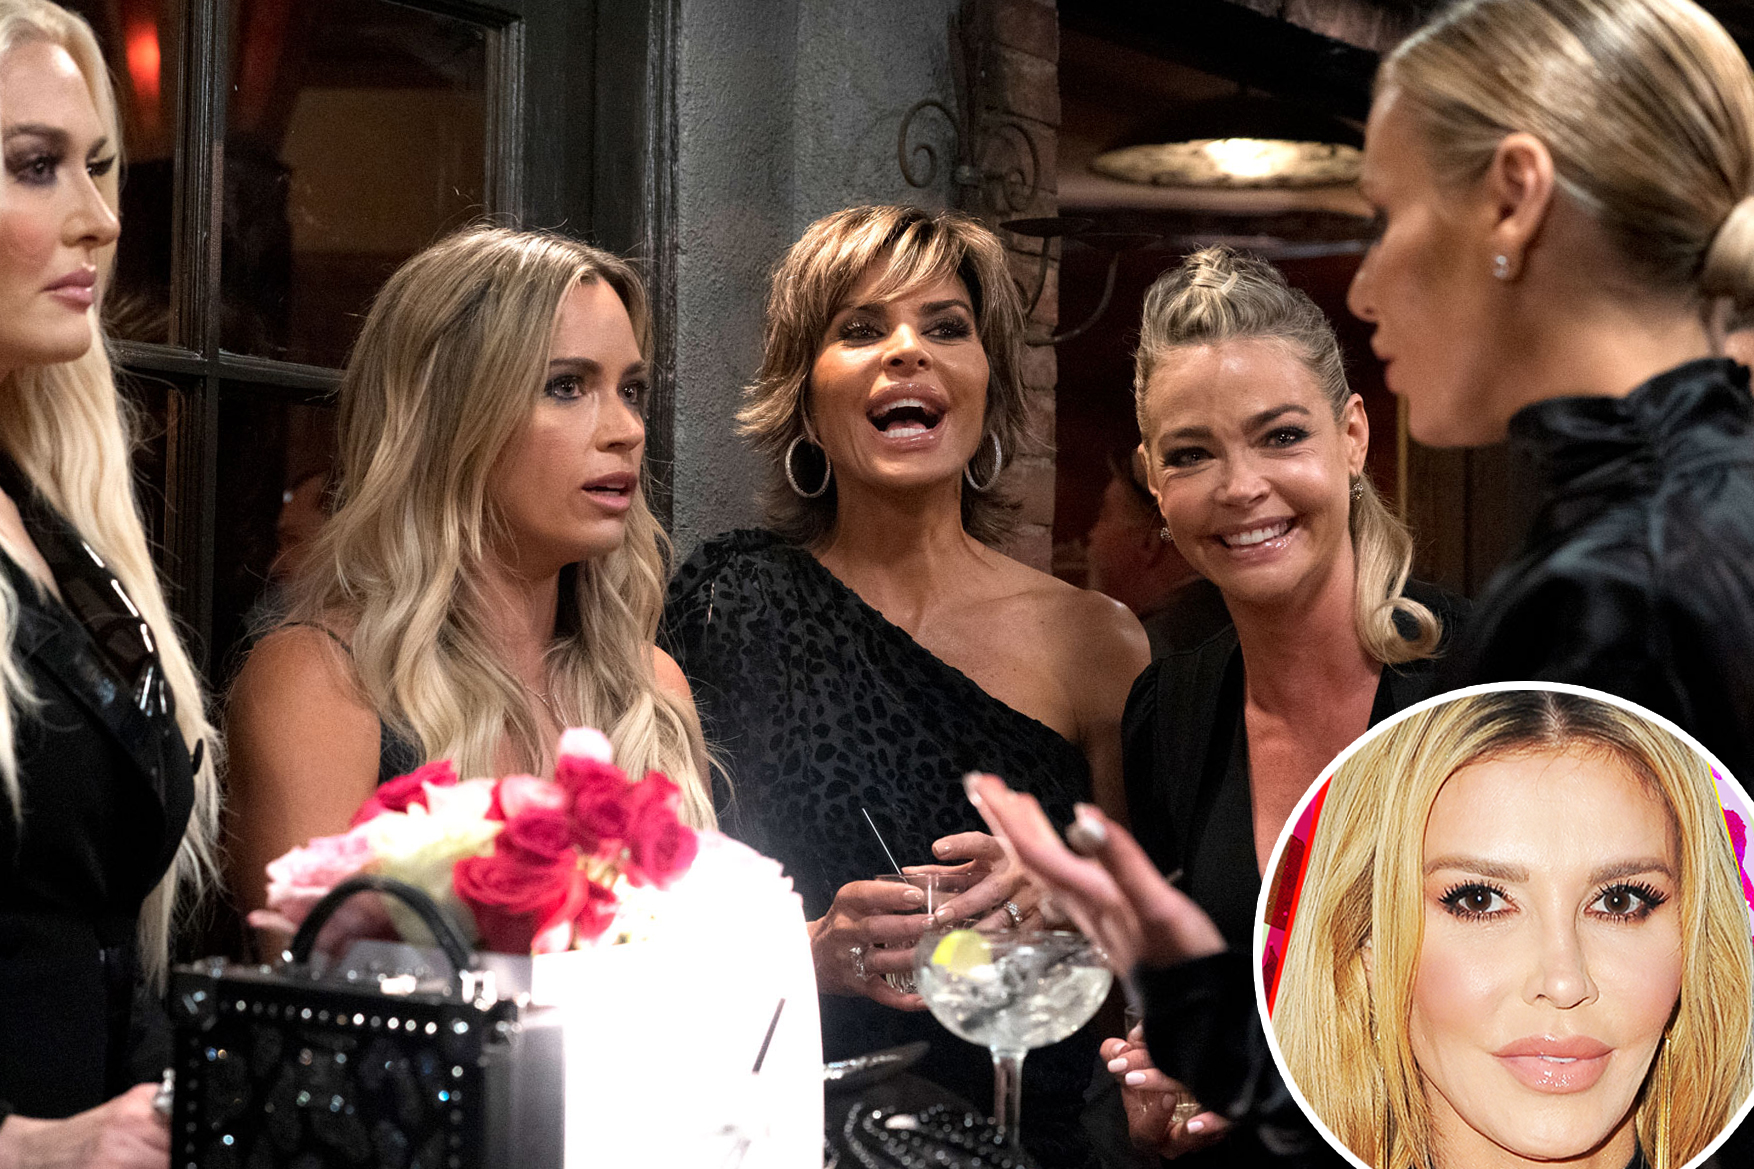 Where Does Brandi Glanville Stand with the RHOBH Cast After Season 9?